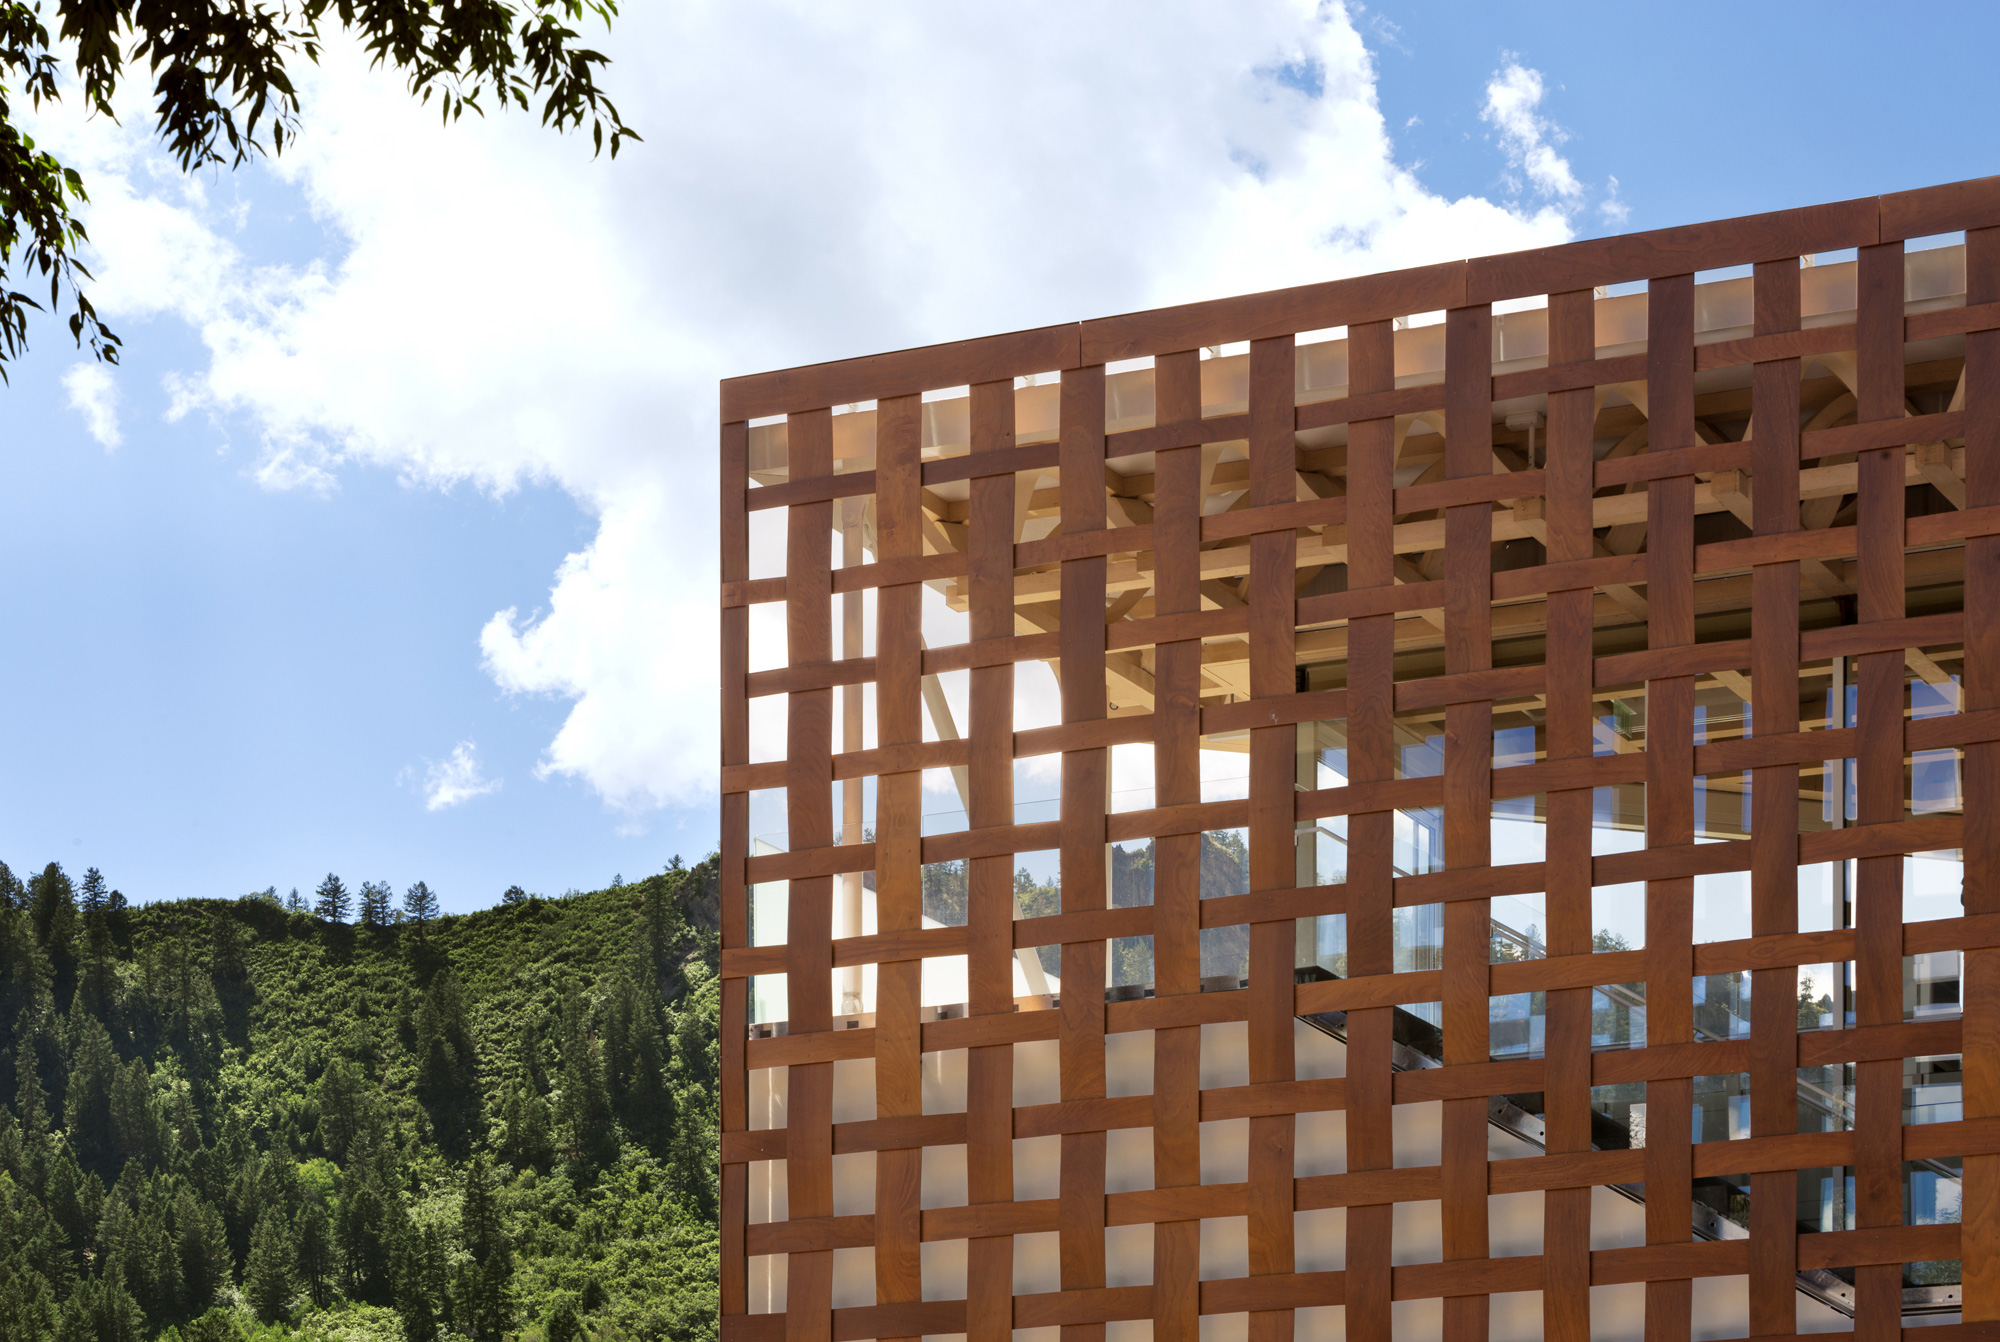 Aspen Art Museum / Shigeru Ban Architects (32)